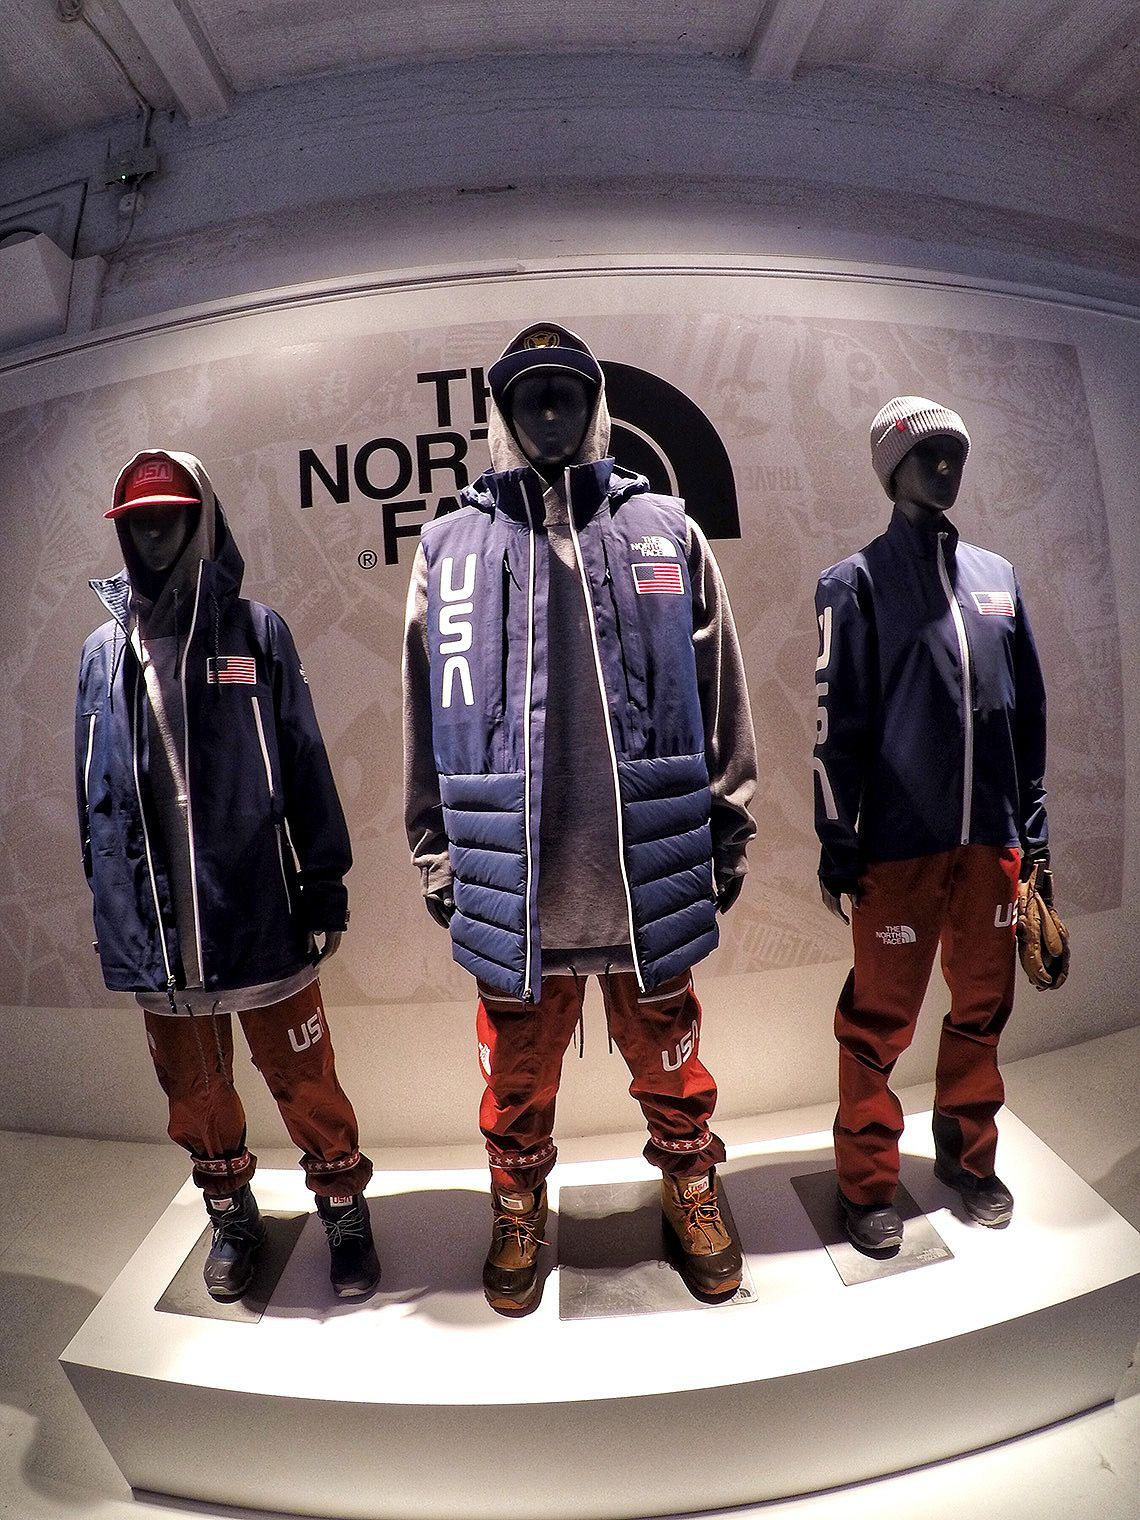 b448e503f The 2018 US Freeskiing Olympic Team uniforms; The North Face outfits ...